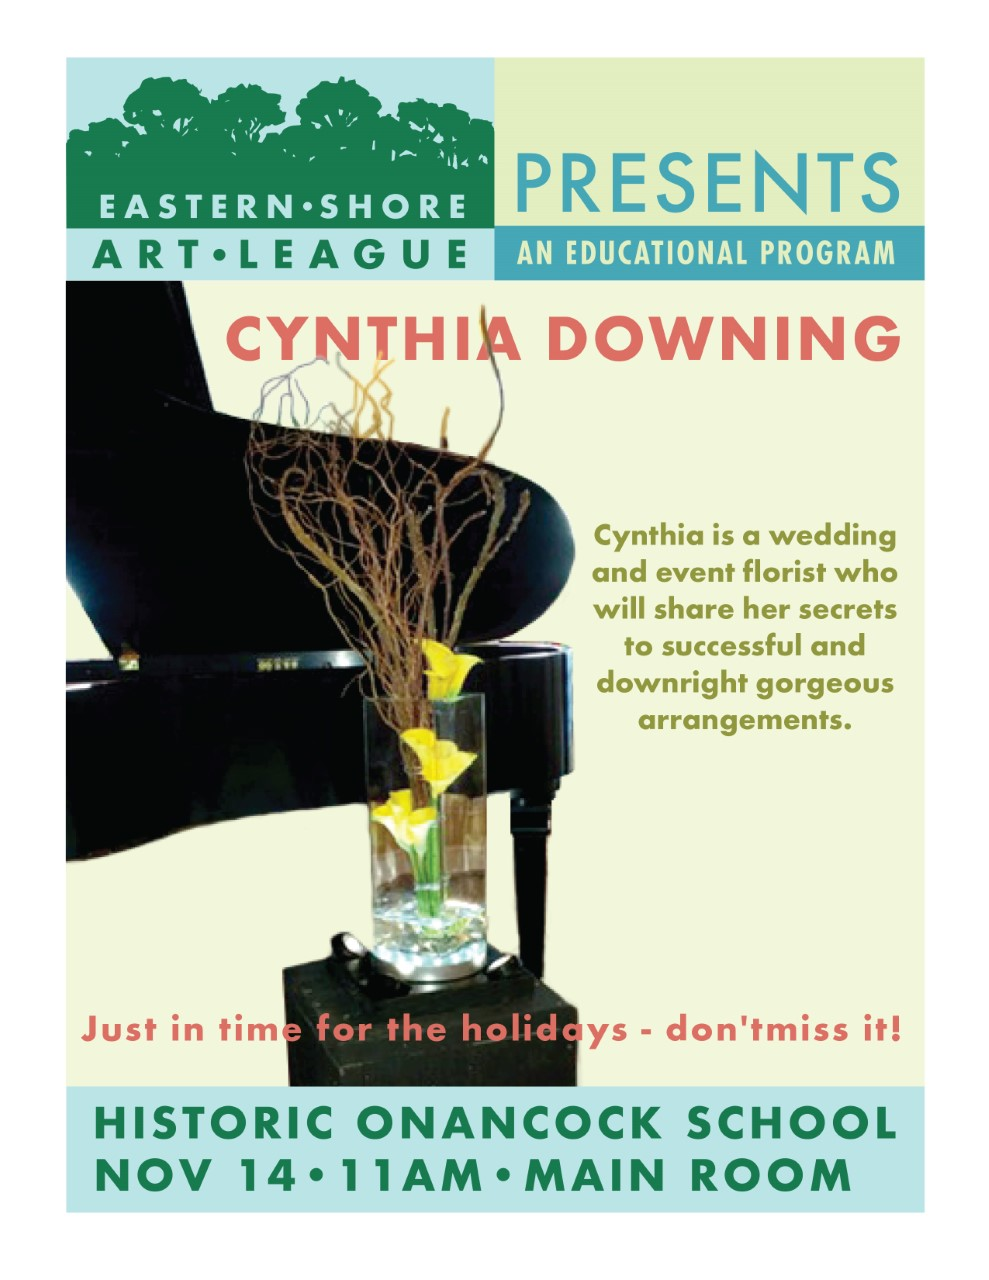 FREE - Cynthia Downing is a wedding and event florist who will share her secrets to successful and downright gorgeous arrangements.Just in time for the holidays!